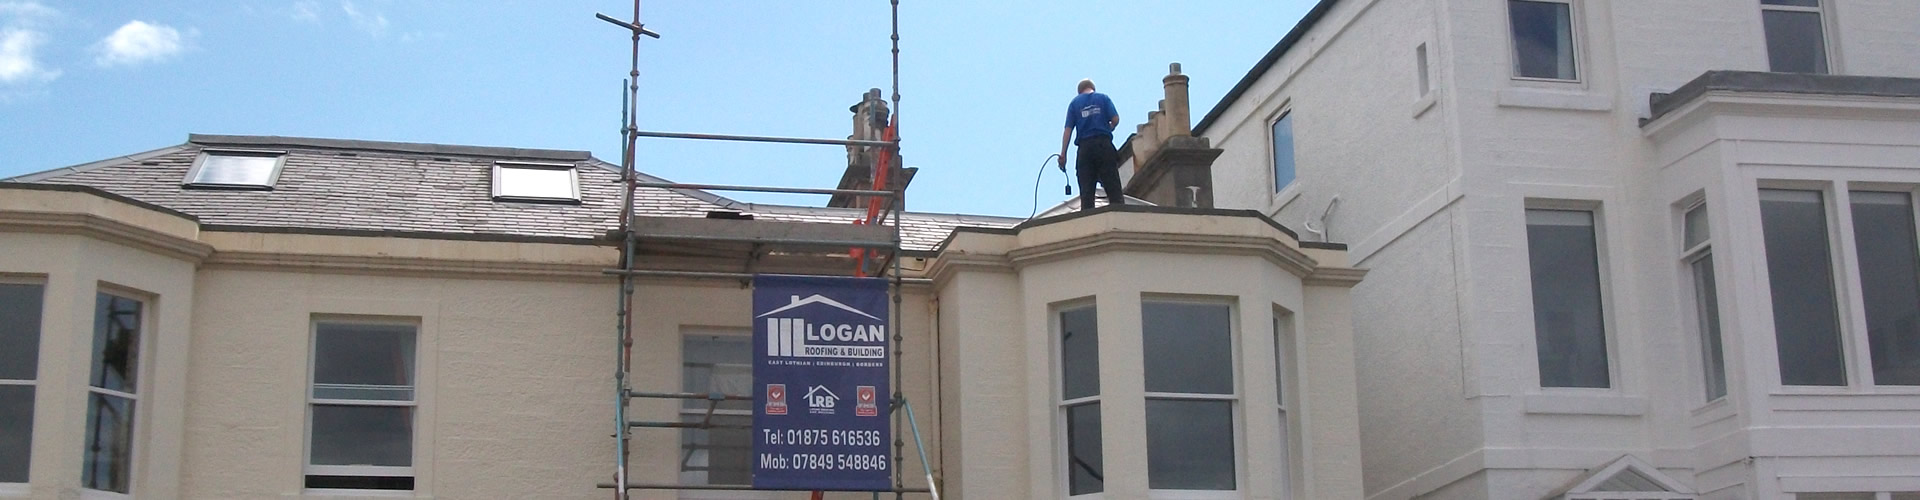 Logan Roofing And Building Roofers East Lothian Roofing